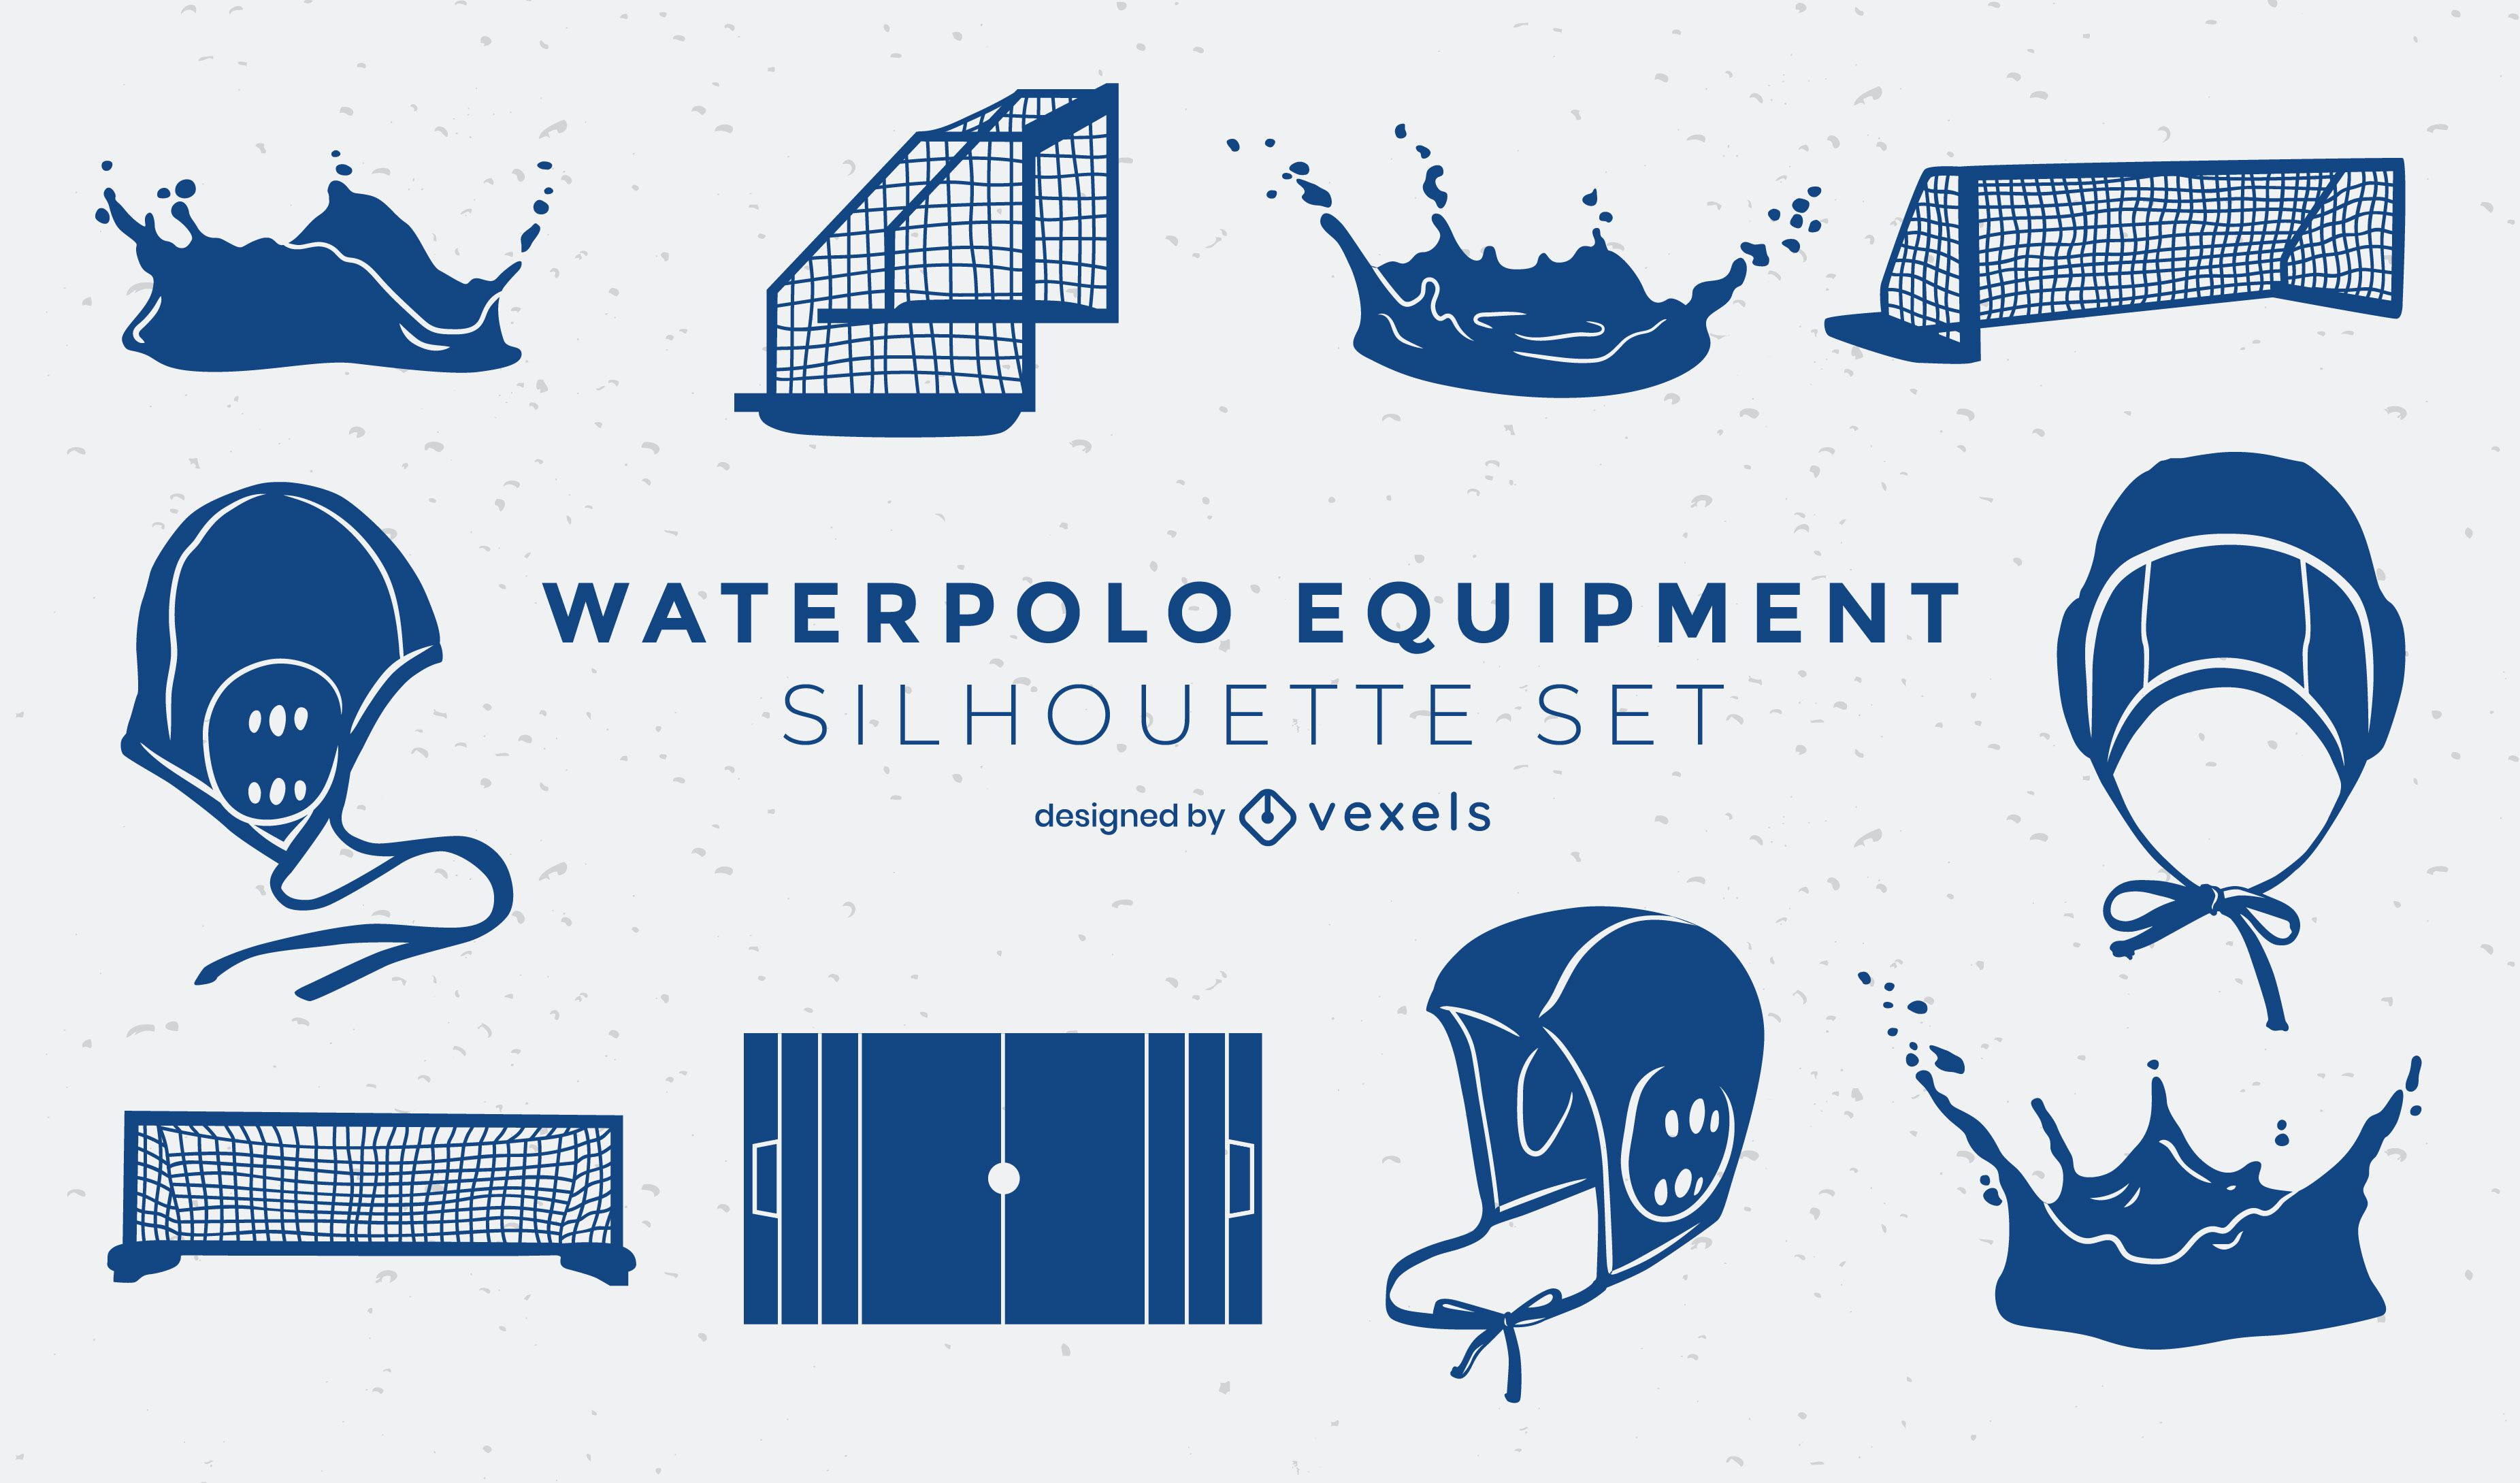 Waterpolo elements cut out